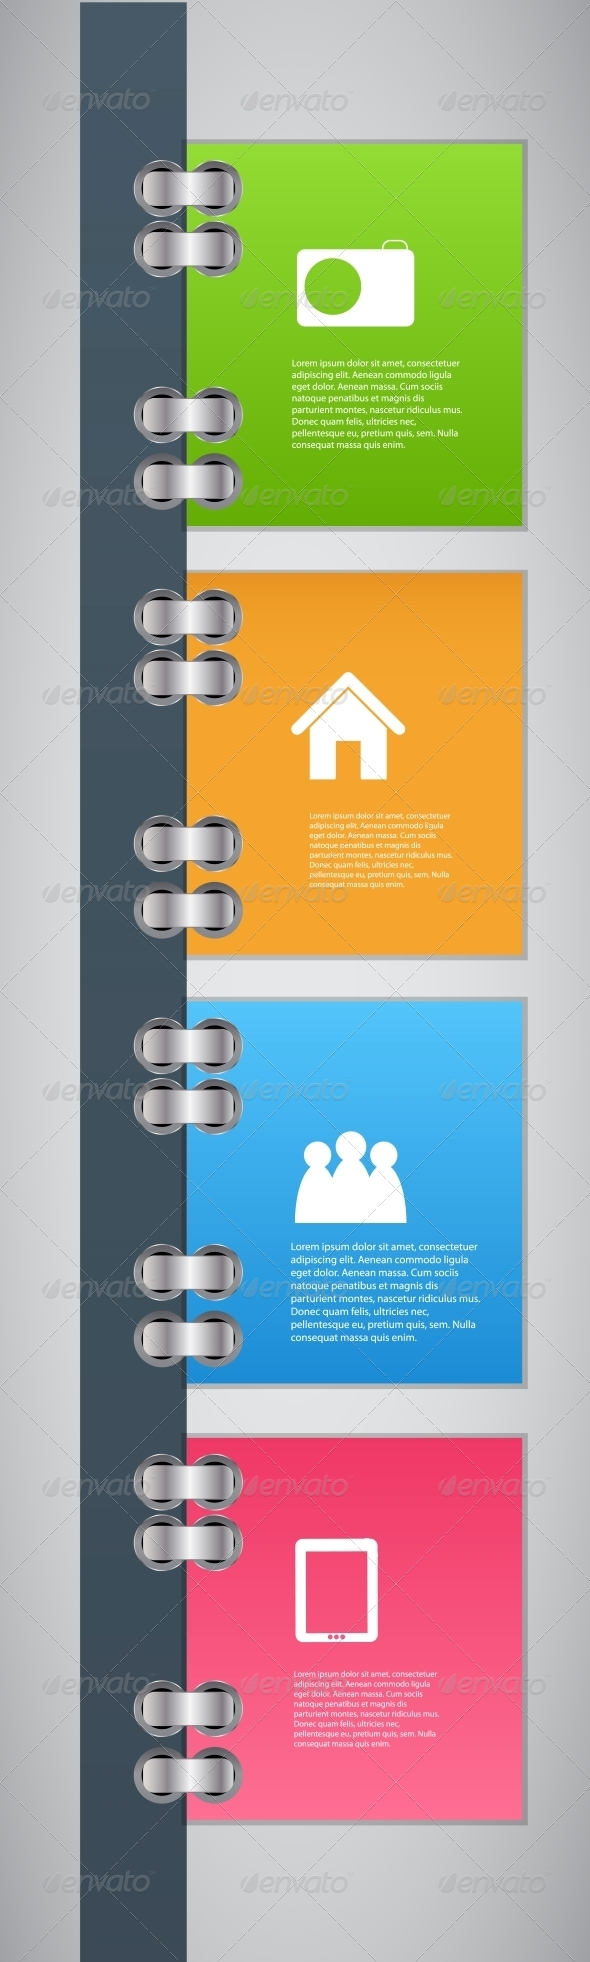 GraphicRiver Infographic Template Design Vector Illustration 4797597